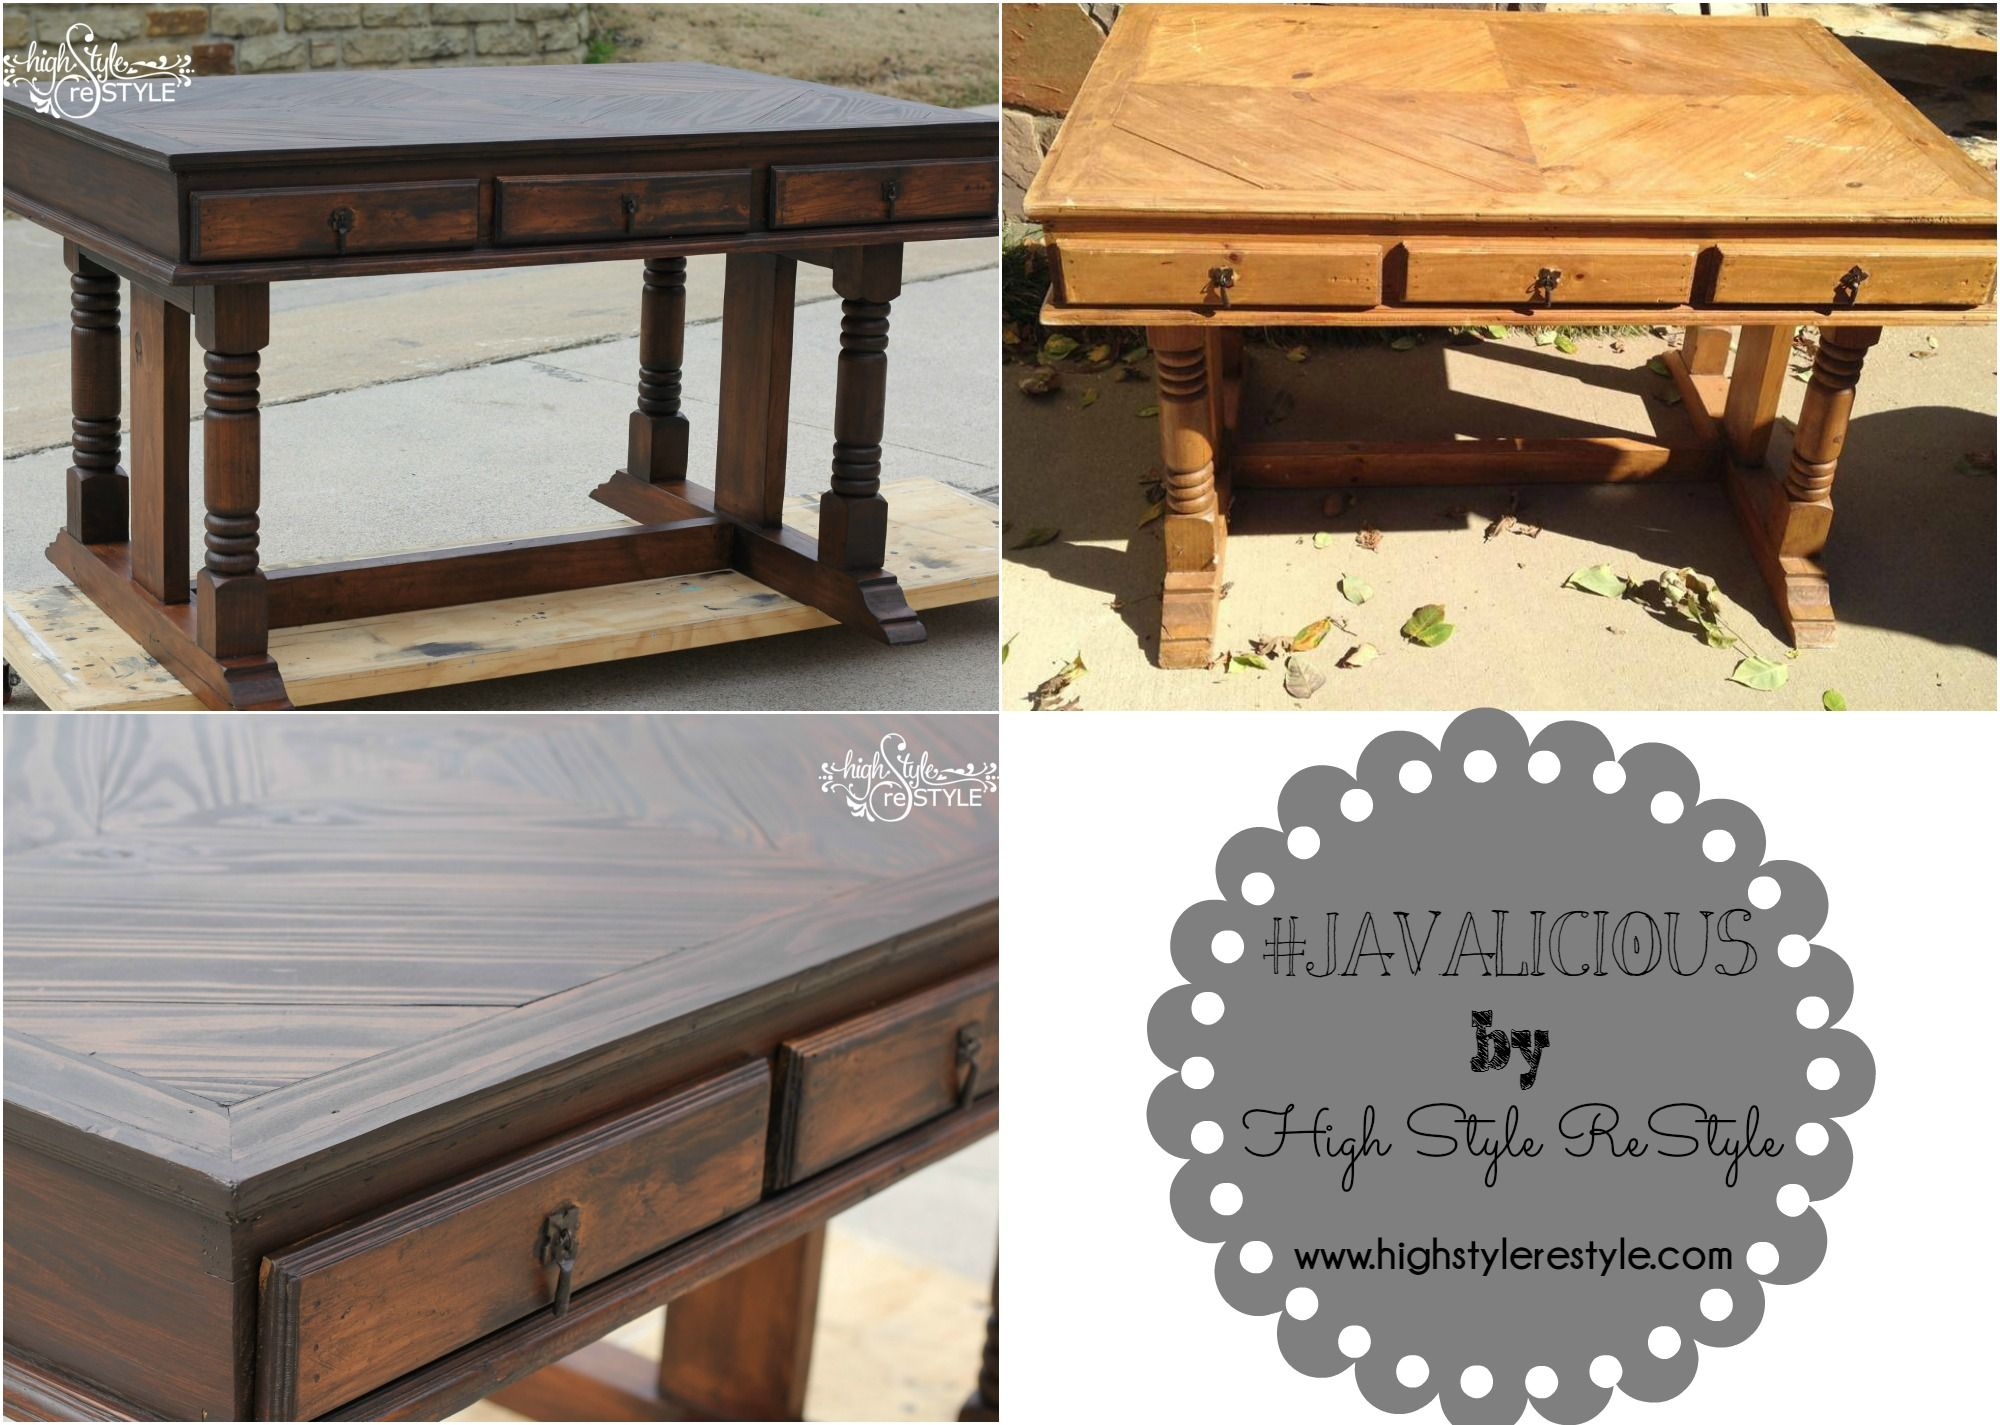 #GeneralFinishes #javagel  Trestle desk makeover with General Finishes java gel stain.    To see more of our restyles, follow us on Facebook at https://www.facebook.com/pages/High-Style-Restyle/296597457120303?fref=ts  http://www.highstylerestyle.com/